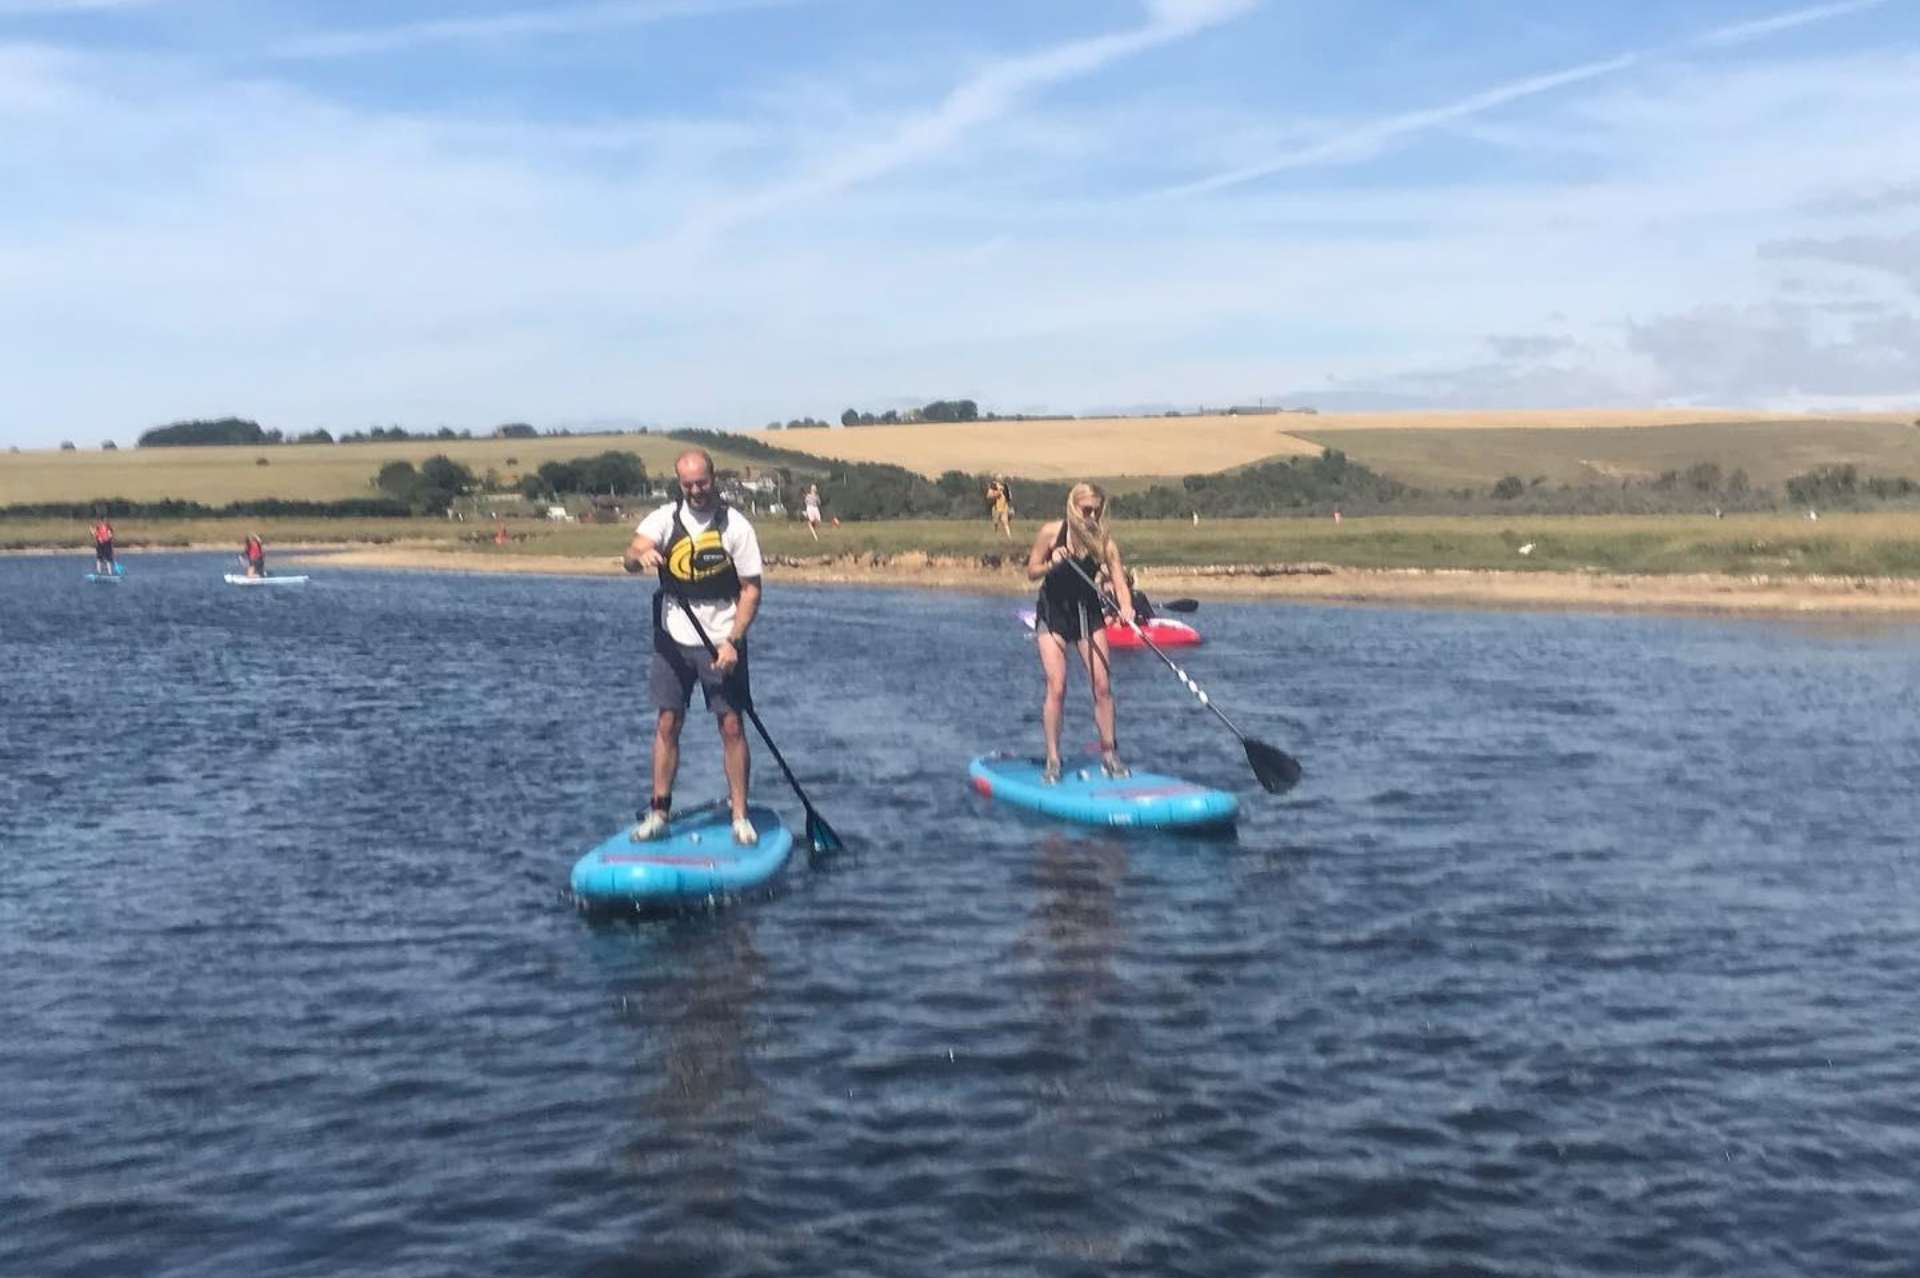 two people paddle boarding on cuckmere haven in sussex